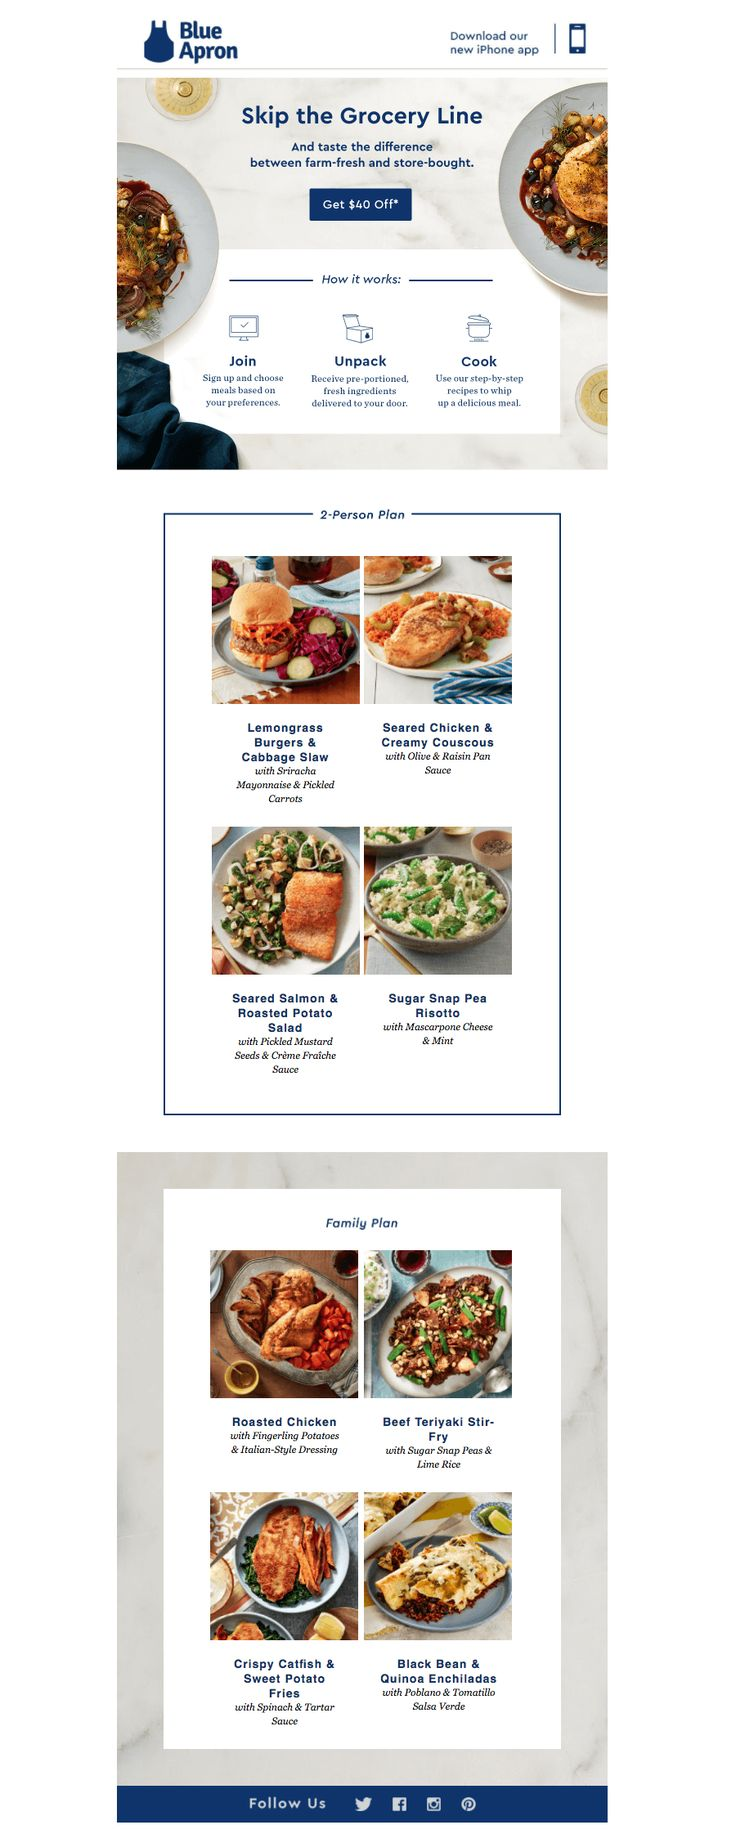 Blue apron halal - How Are Food Startups Recipe Blogs And Other Food Companies Using Emaildesign Blue Apronrecipe